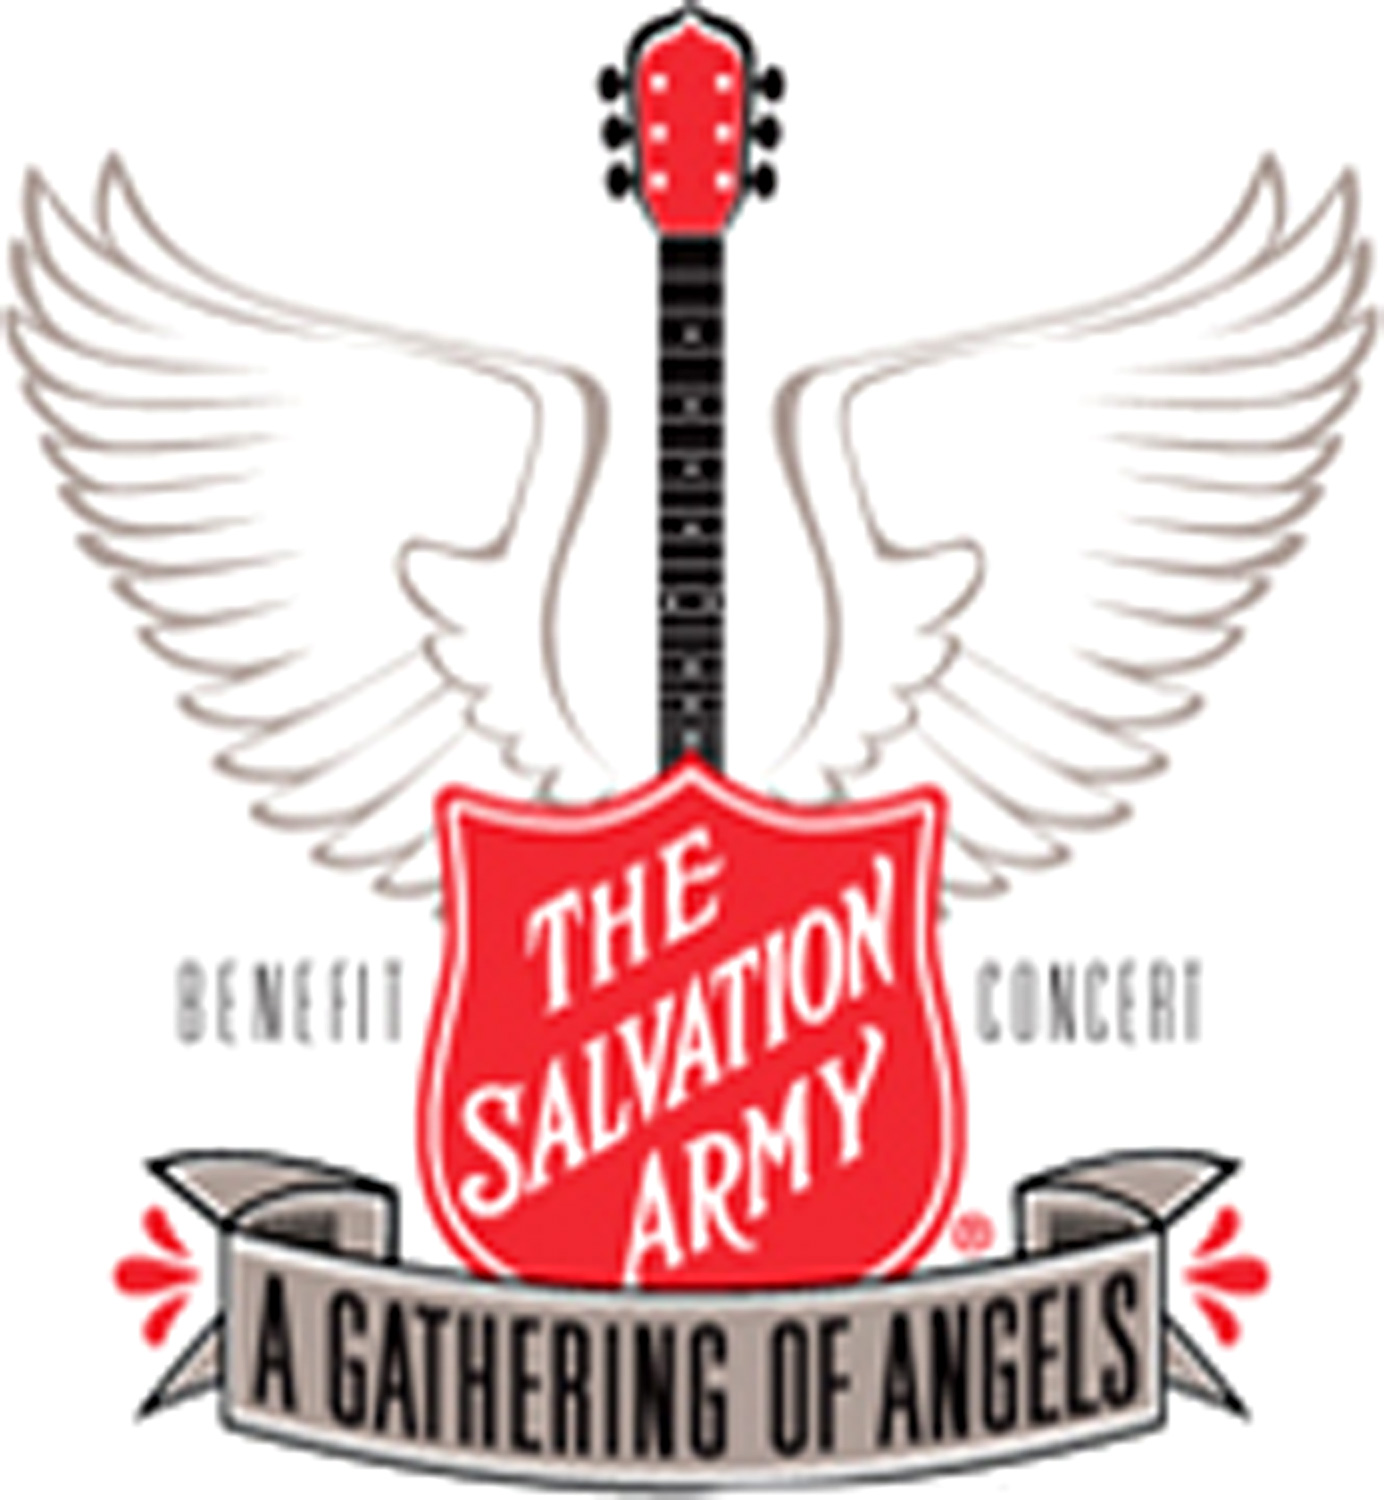 A gathering of angels in support of the salvation army nashville nashvilles salvation army biocorpaavc Choice Image